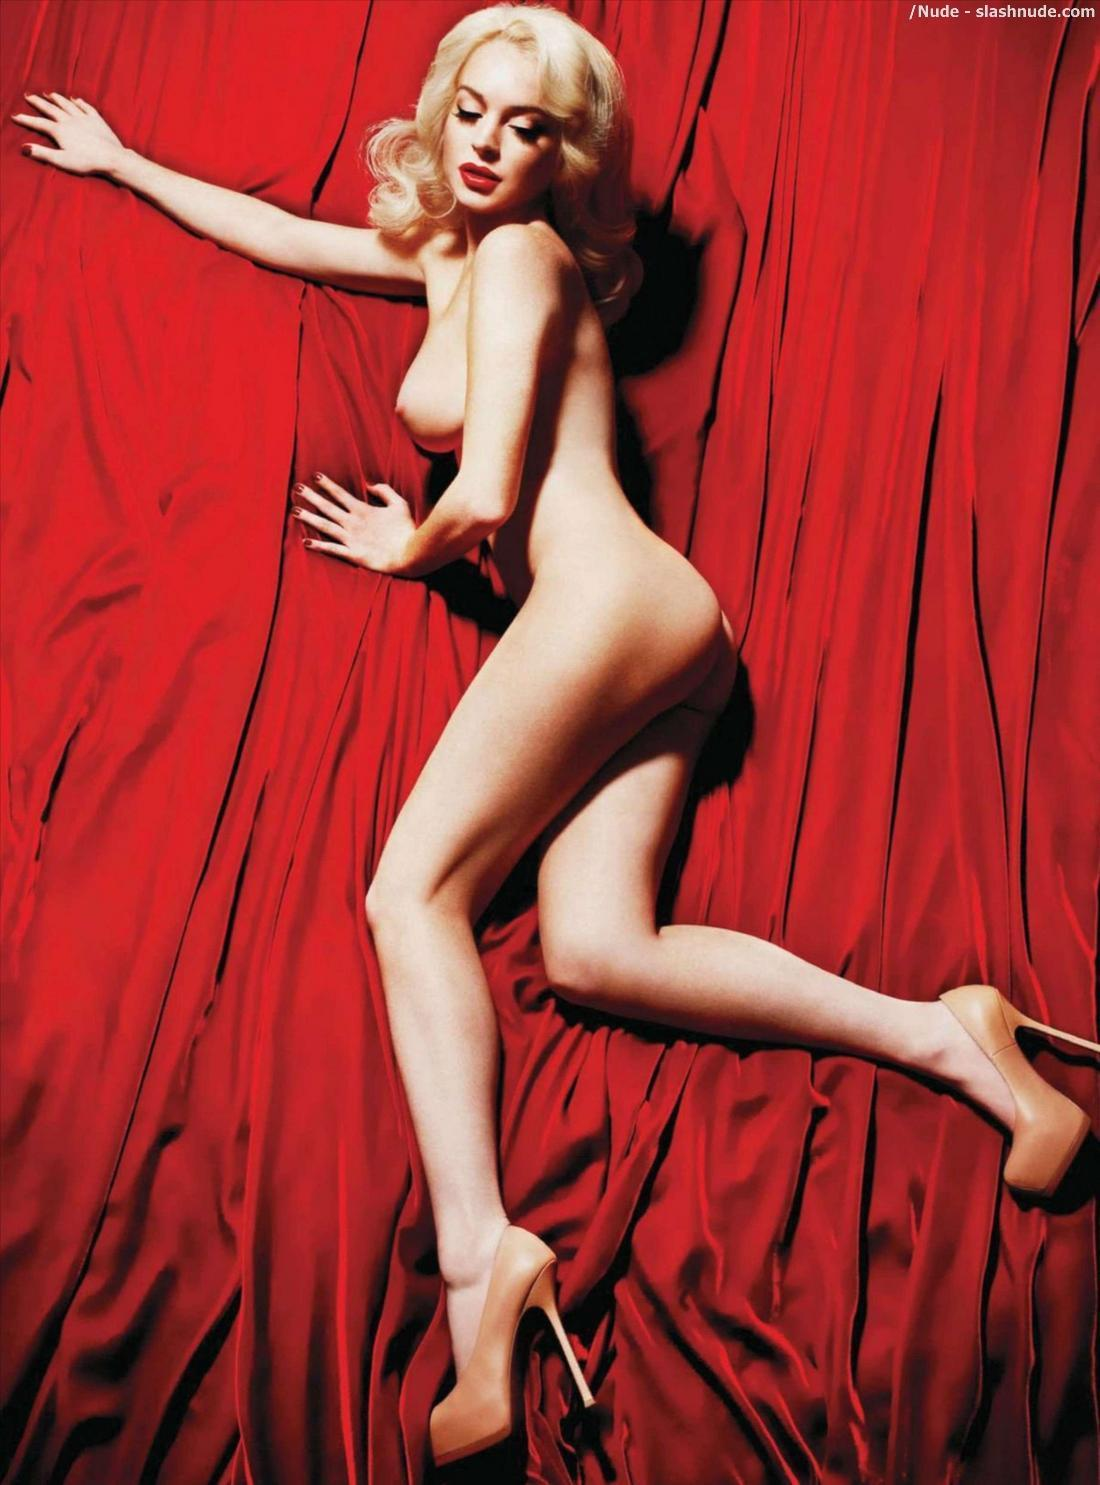 Lindsay lohan nude as marilyn monroe